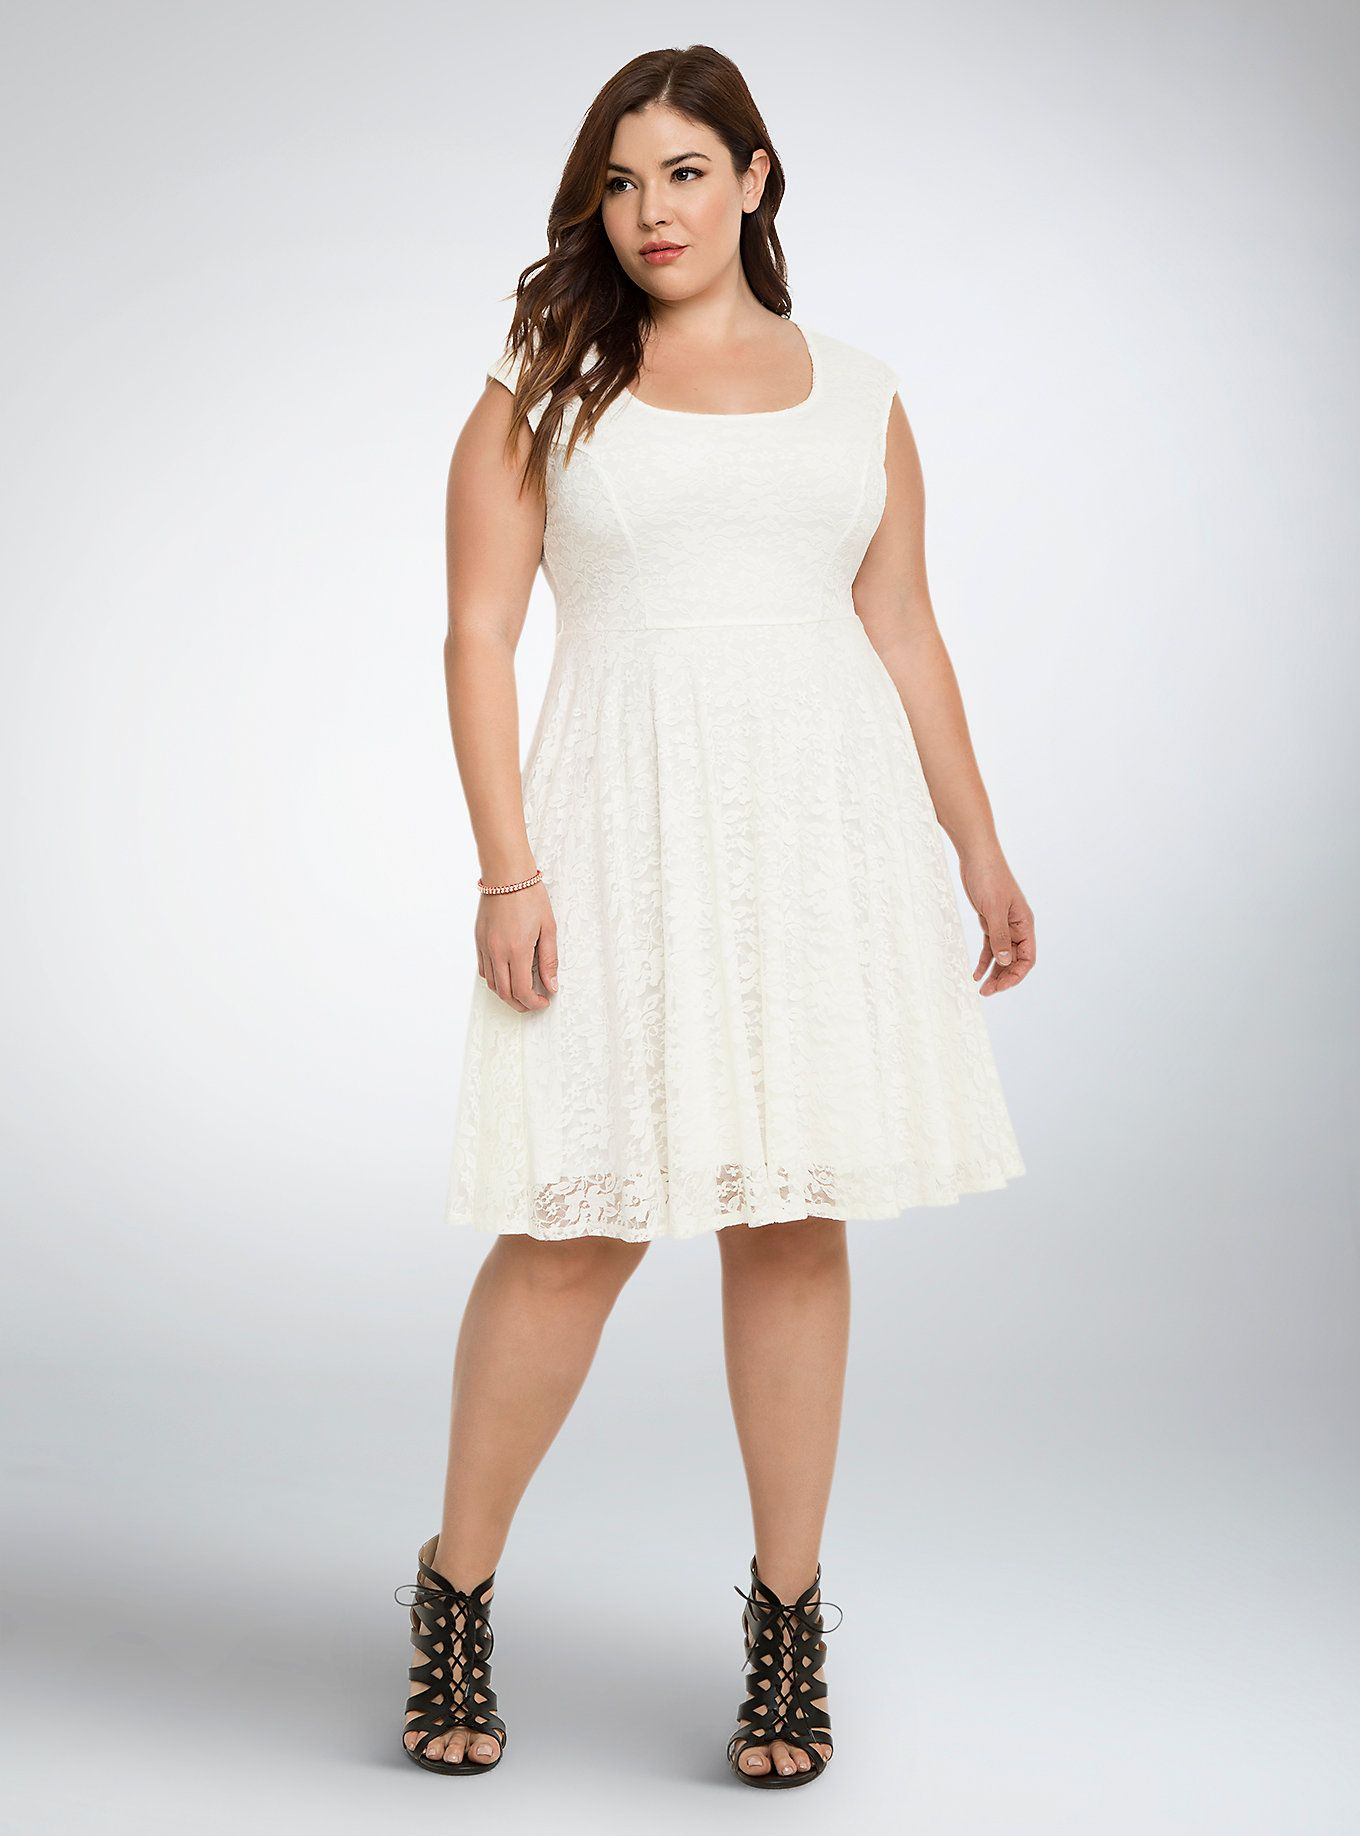 Lace dress styles for funeral  Lace Open Back Skater Dress  Cloud dancer Full skirts and White lace